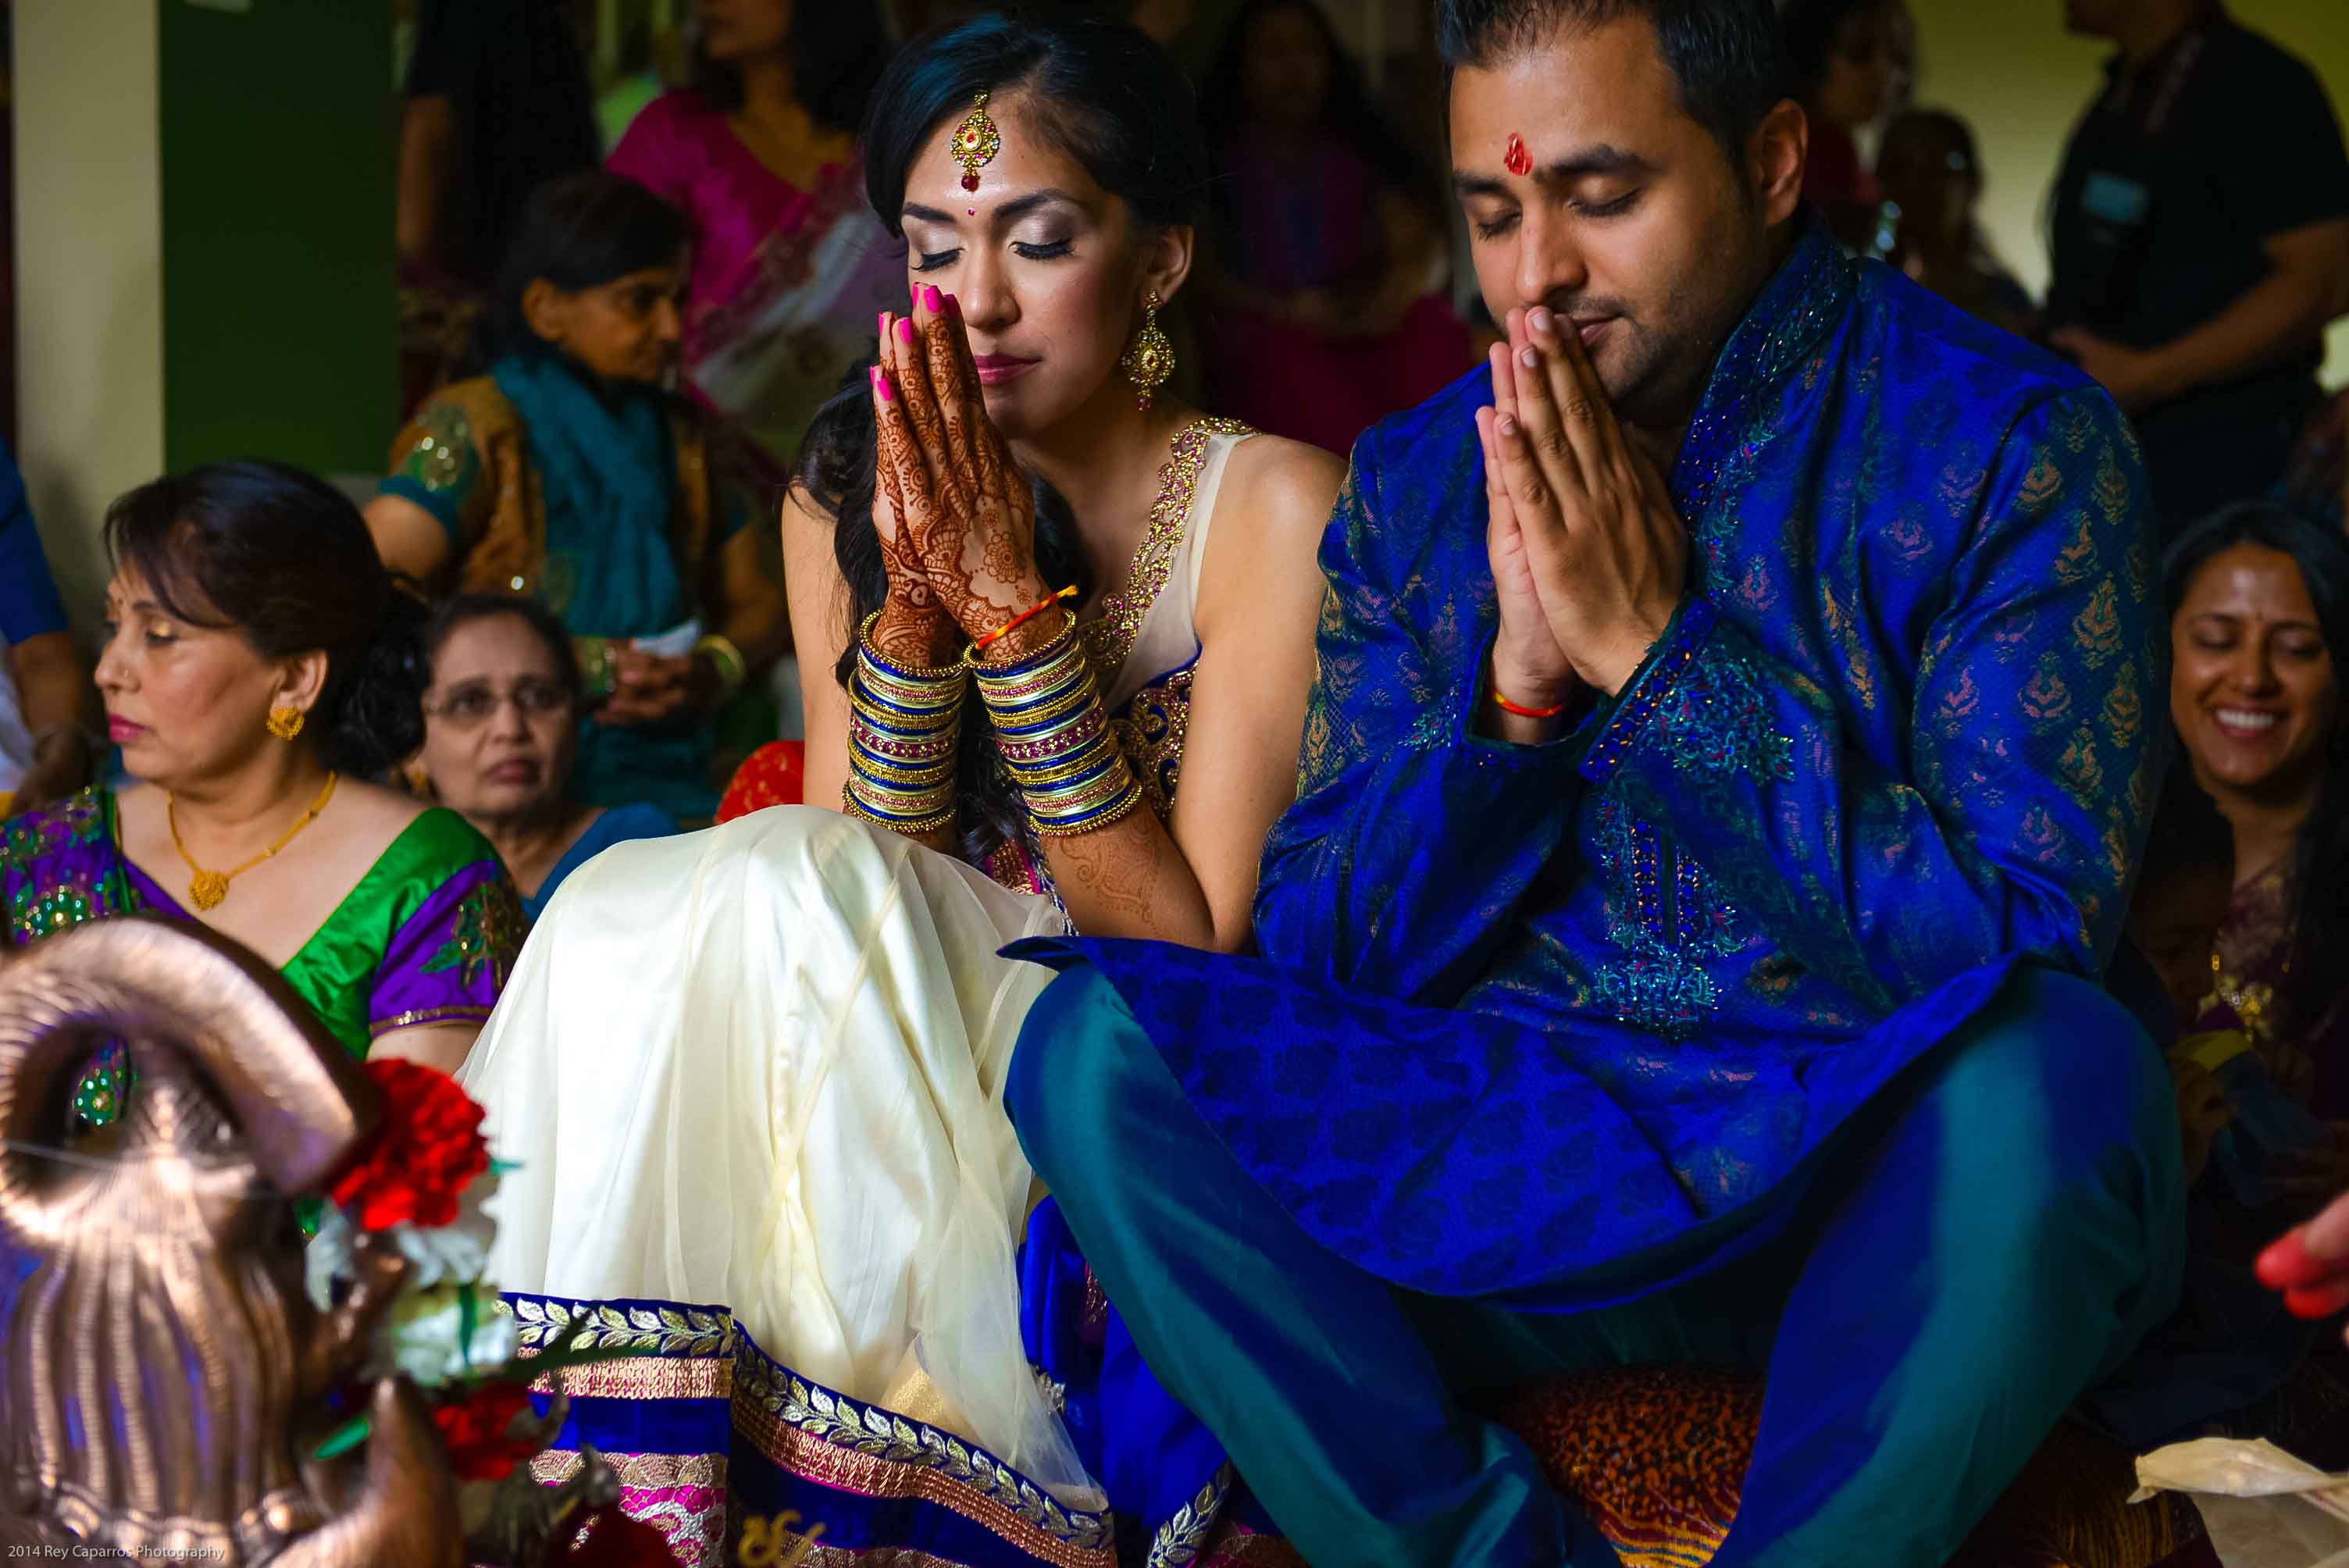 Gujarati ceremony photographer